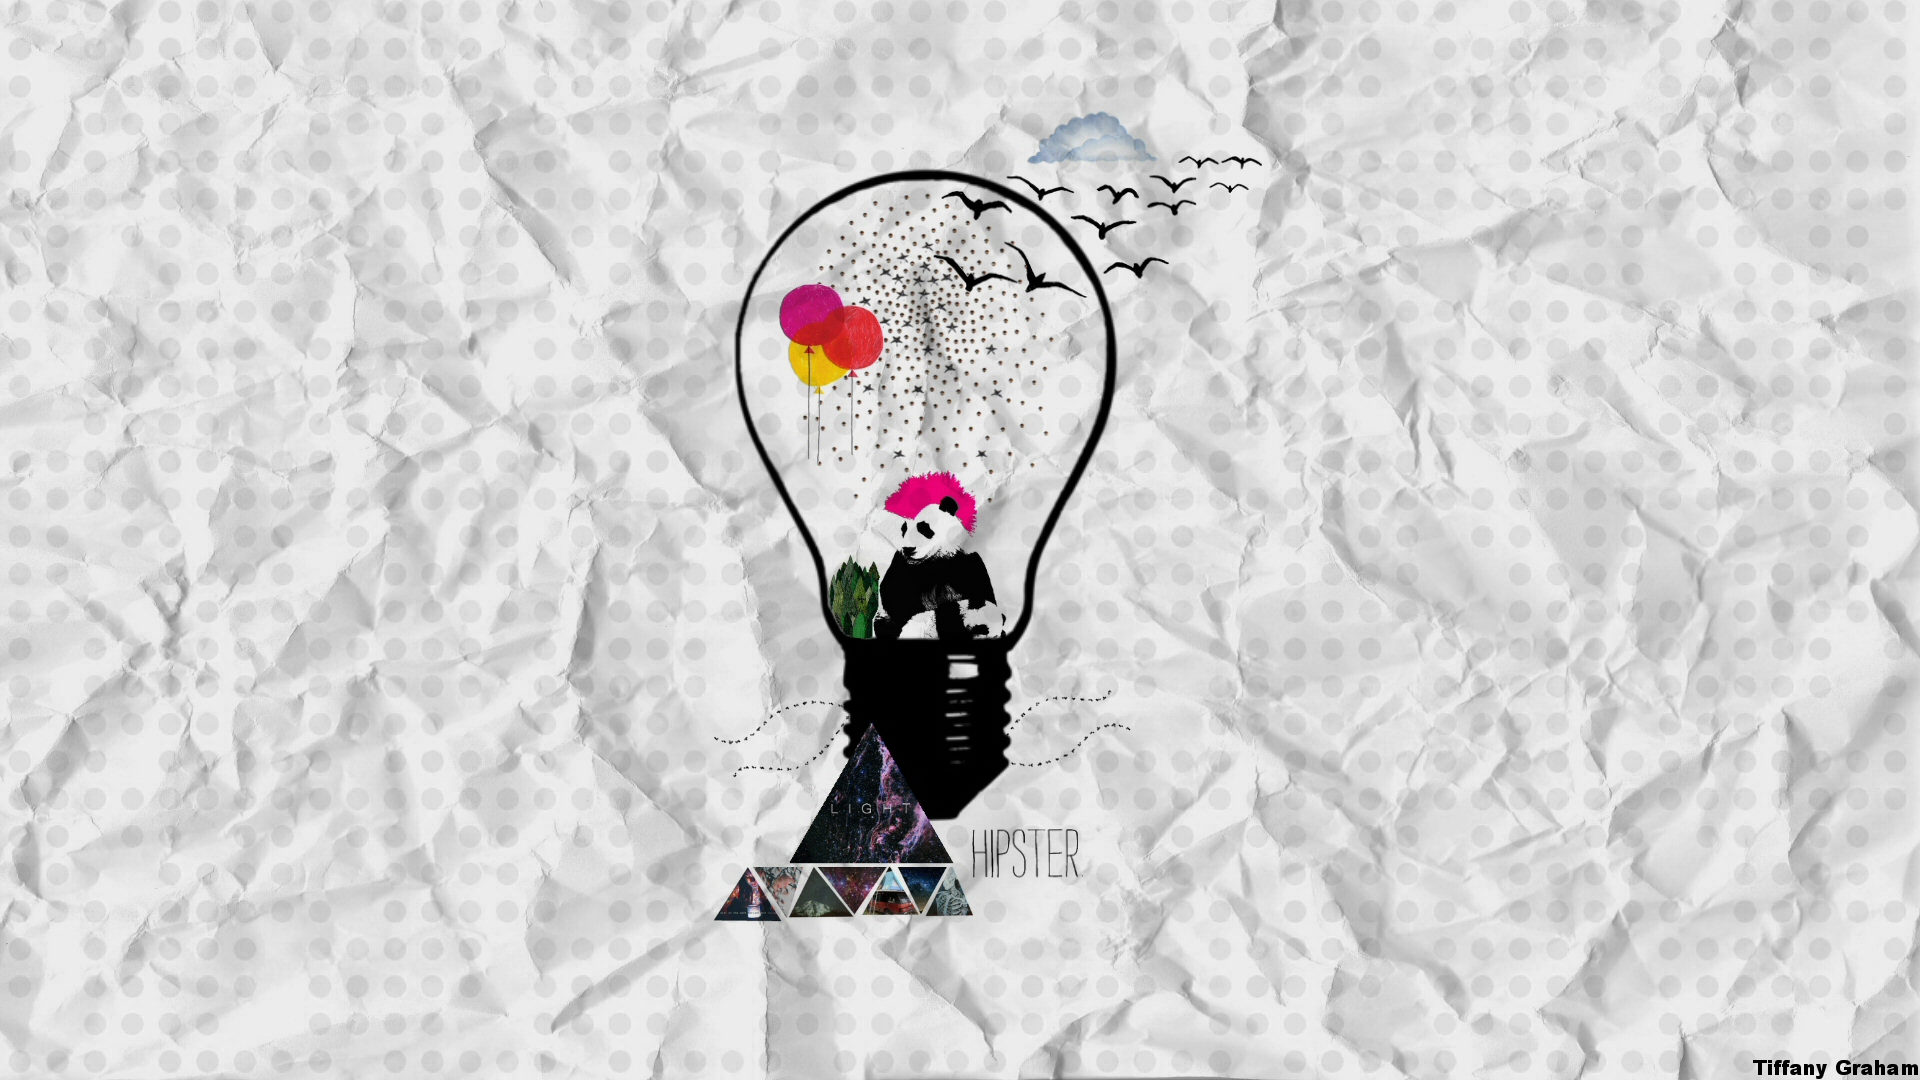 newest hipster wallpapers dreams of a hipster think like a hipster